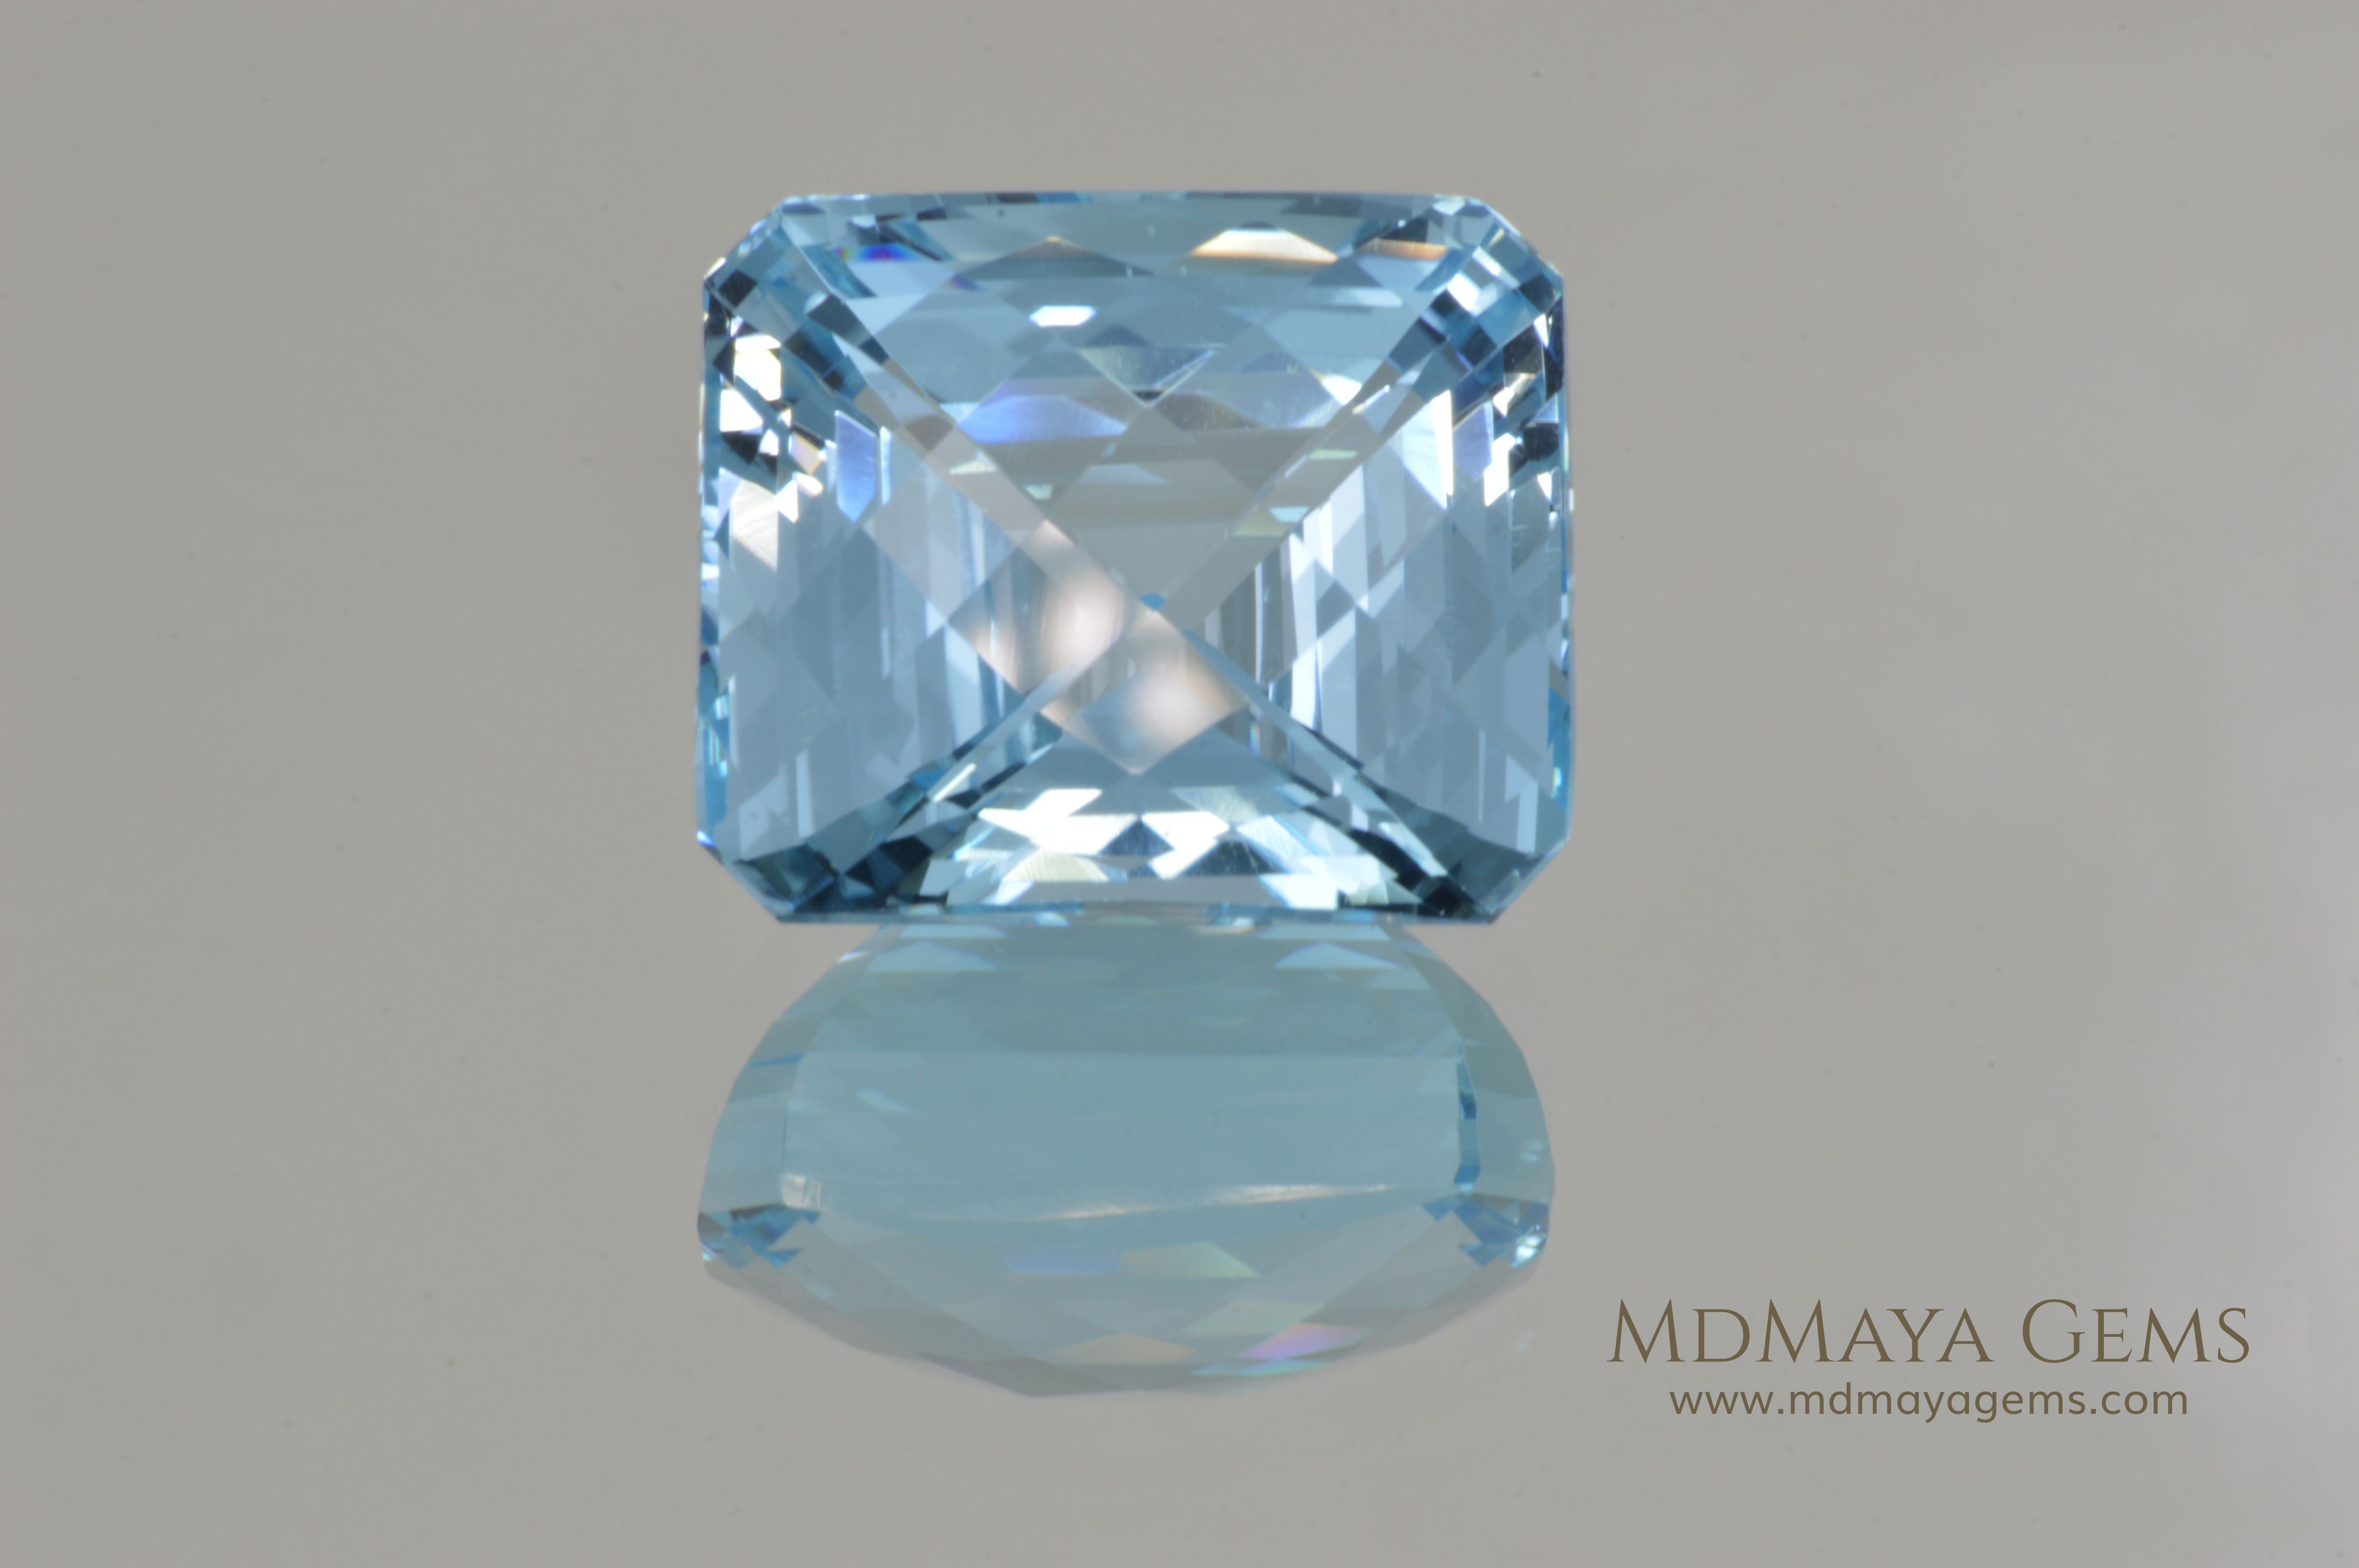 Genuine Large Blue Topaz. Fancy Cut. 42.70 ct. Exceptional Fine Fabulous Large Blue Topaz. Simply Gorgeous!